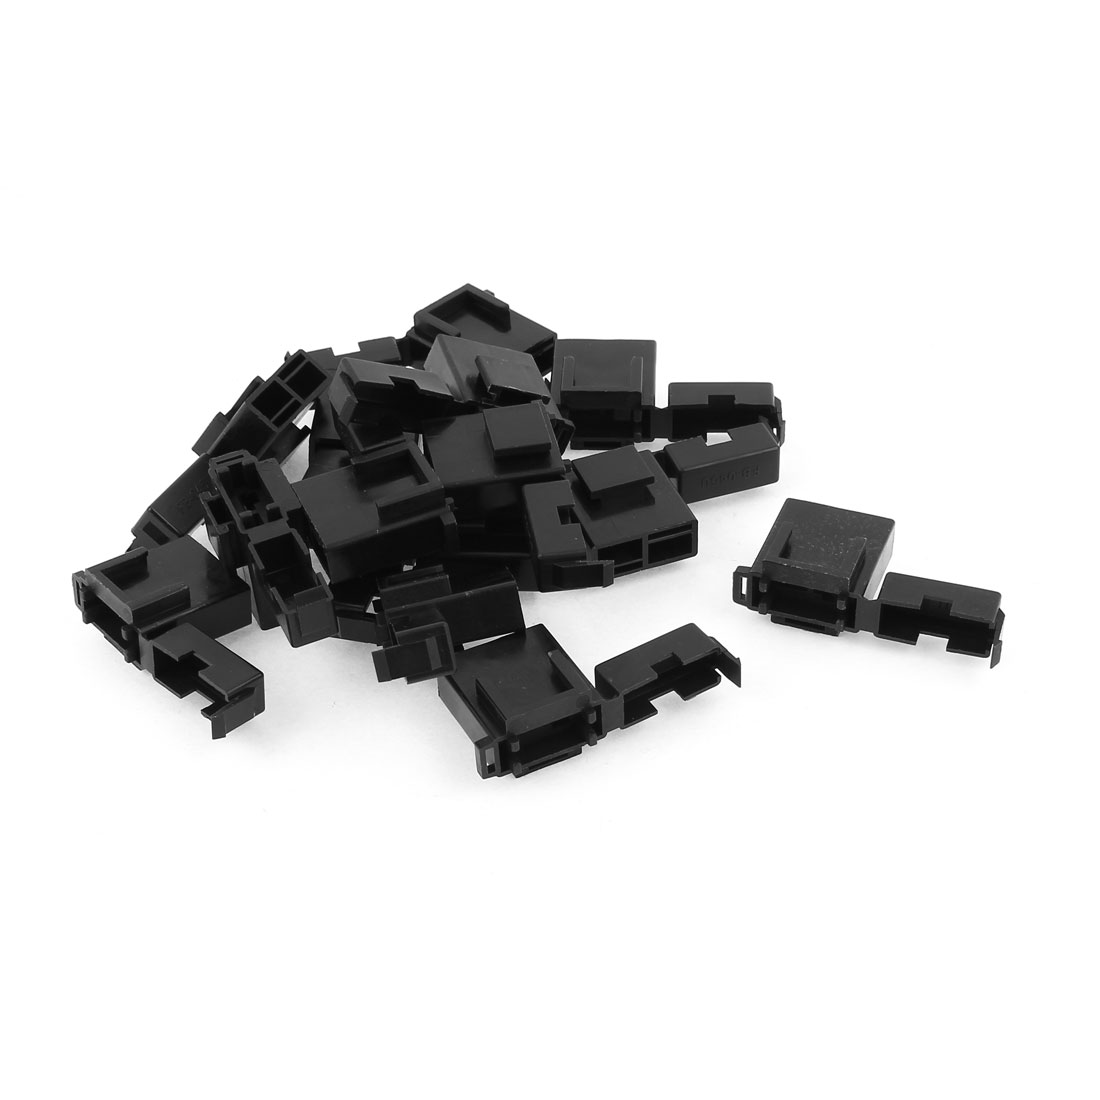 Auto Car Truck Vane Fuse Terminal Block Box Holder Storage Black 15 Pcs